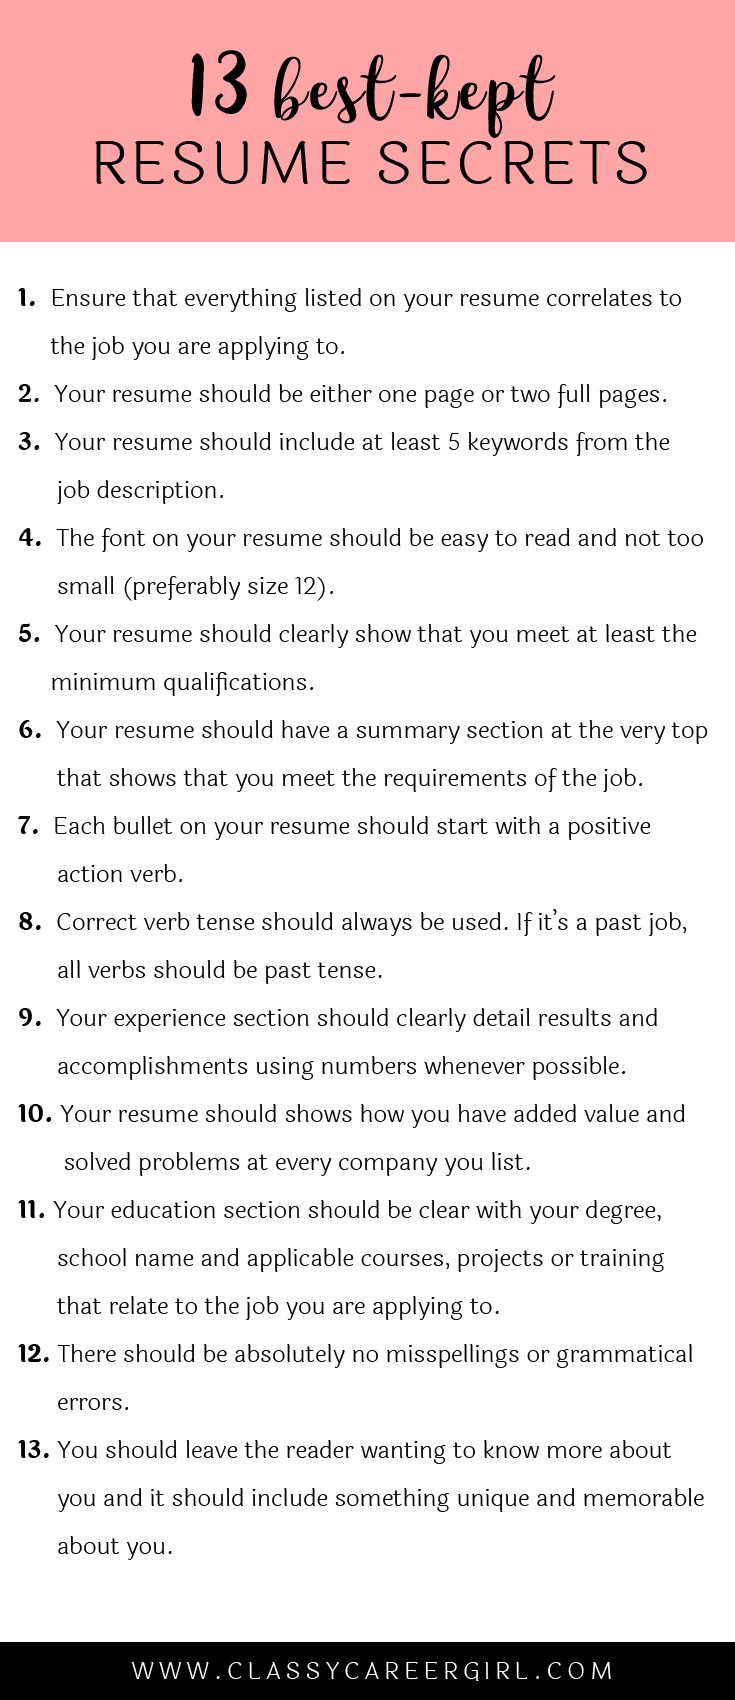 Opposenewapstandardsus  Stunning  Ideas About Resume On Pinterest  Cv Format Resume Cv And  With Glamorous Some Hiring Managers Will Toss Your Resume Out If You Dont Know These  With Easy On The Eye Entry Level Programmer Resume Also Resume En Espanol In Addition Doctors Resume And Young Professional Resume As Well As Resumes Cover Letters Additionally Warehouse Resume Template From Pinterestcom With Opposenewapstandardsus  Glamorous  Ideas About Resume On Pinterest  Cv Format Resume Cv And  With Easy On The Eye Some Hiring Managers Will Toss Your Resume Out If You Dont Know These  And Stunning Entry Level Programmer Resume Also Resume En Espanol In Addition Doctors Resume From Pinterestcom